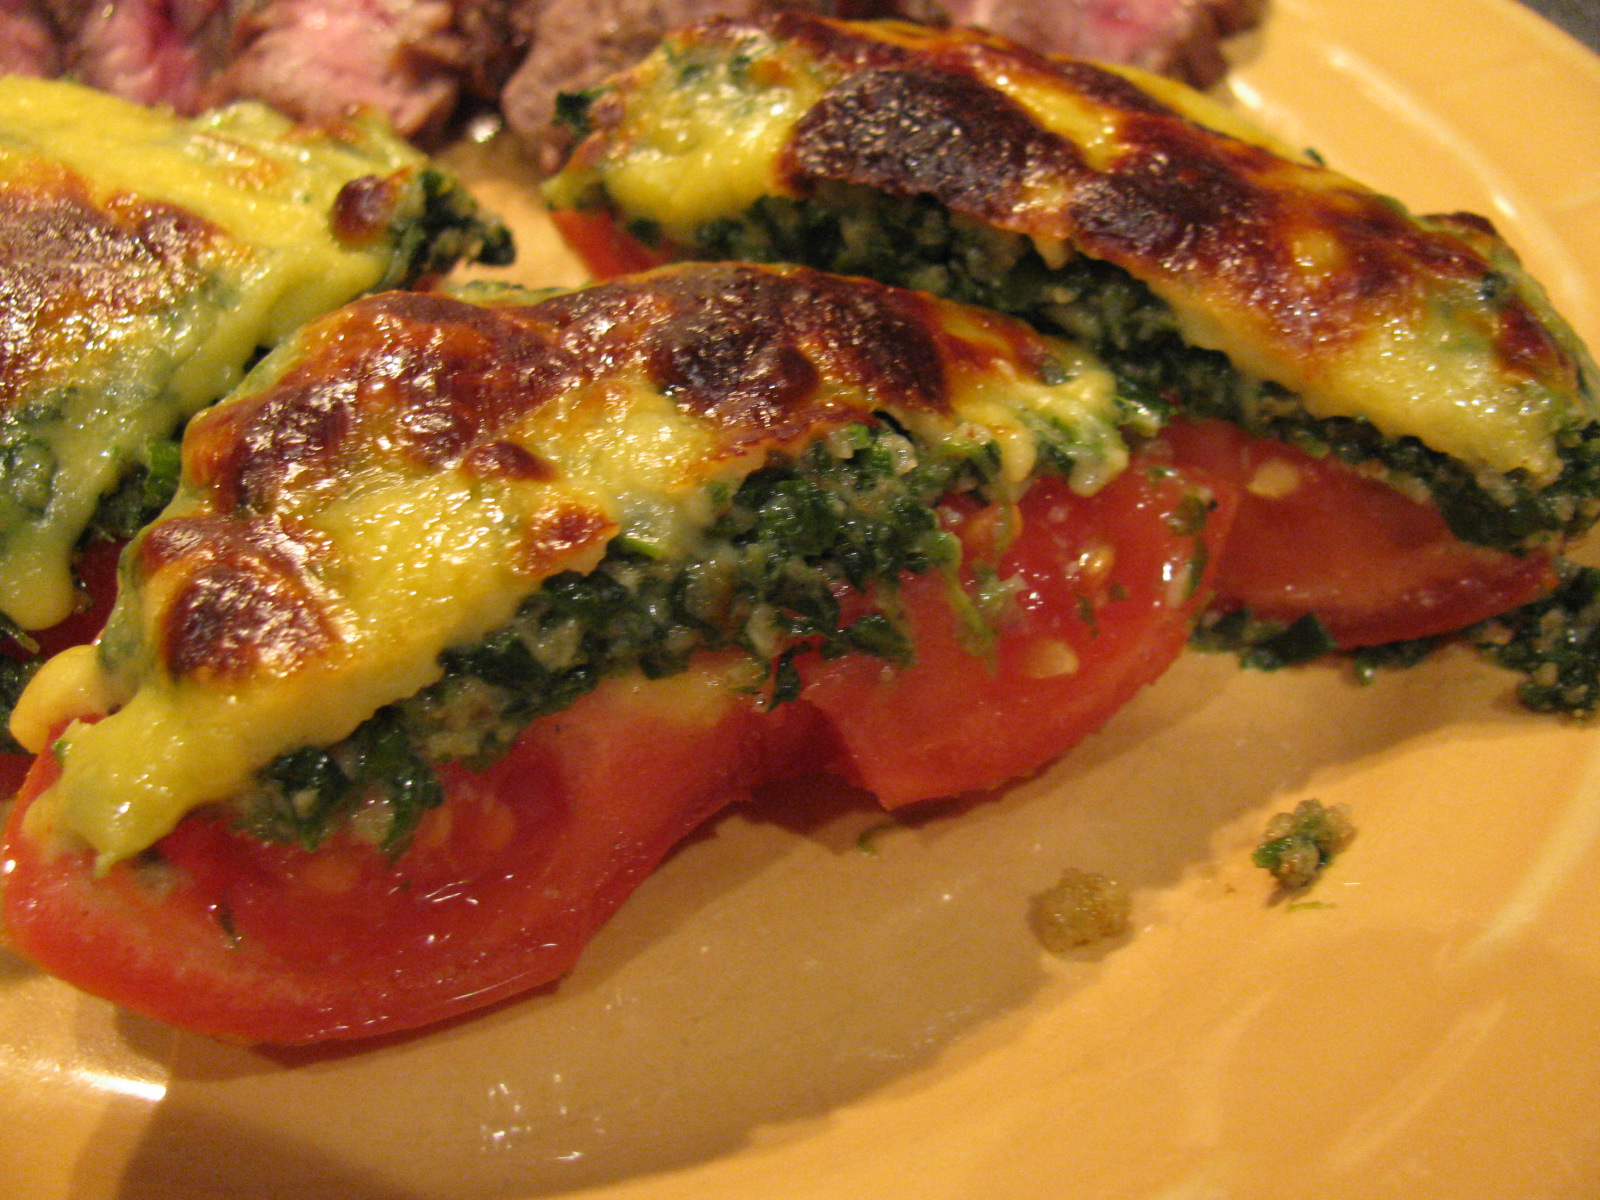 Rita's Recipes: Joe's Grilled Tomatoes